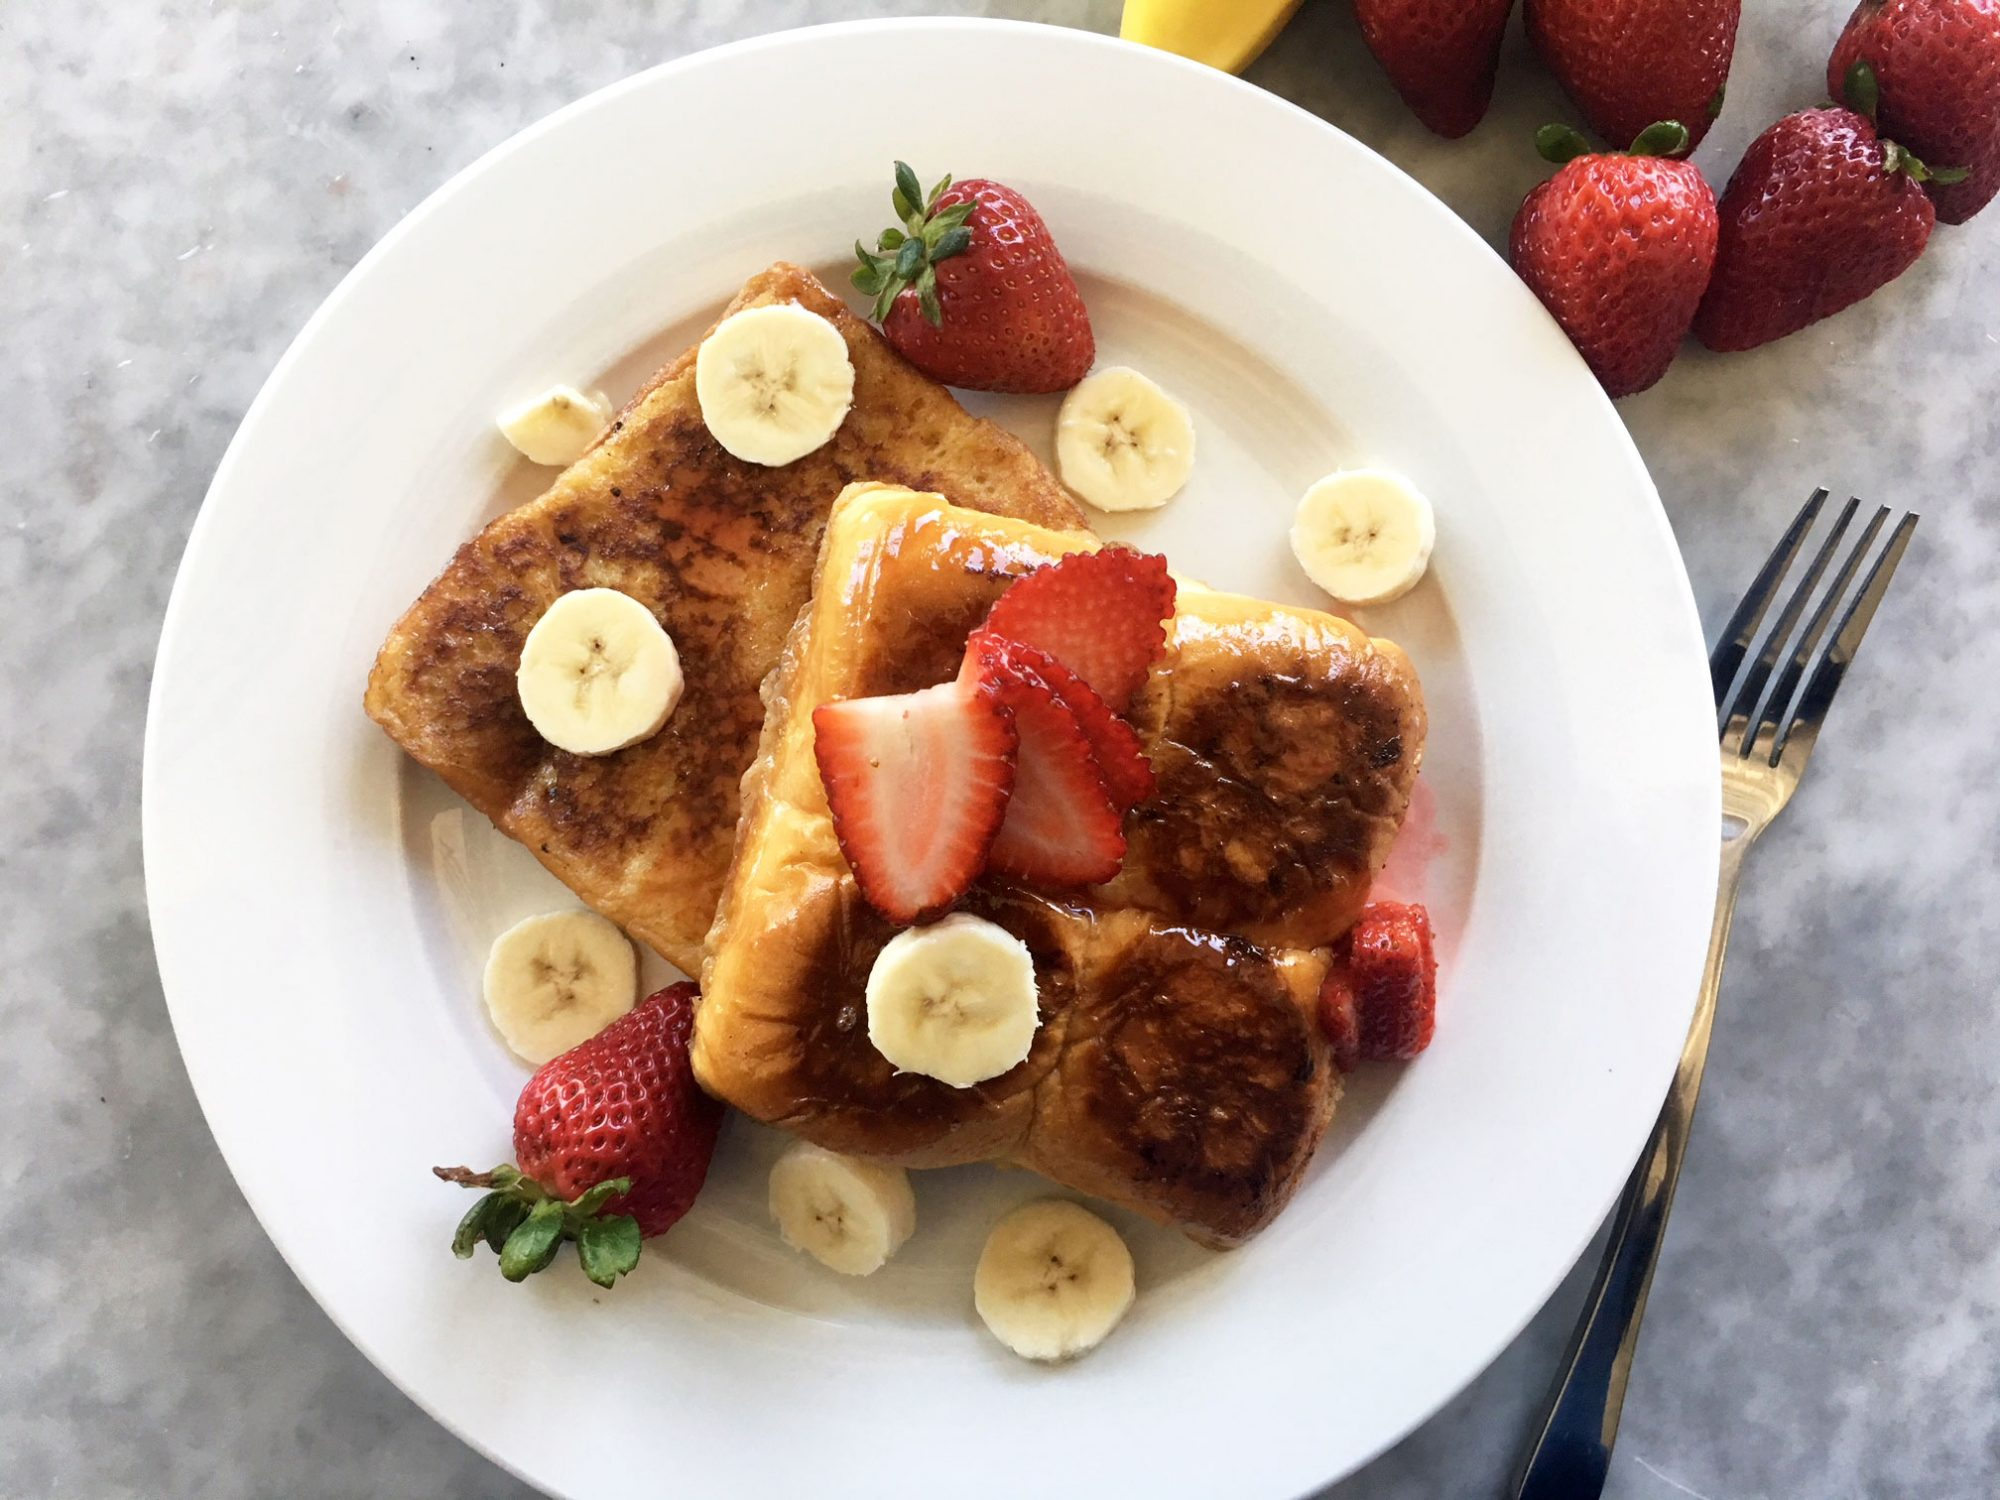 Copycat IHOP Strawberry Banana King's Hawaiian Sweet Bread French Toast